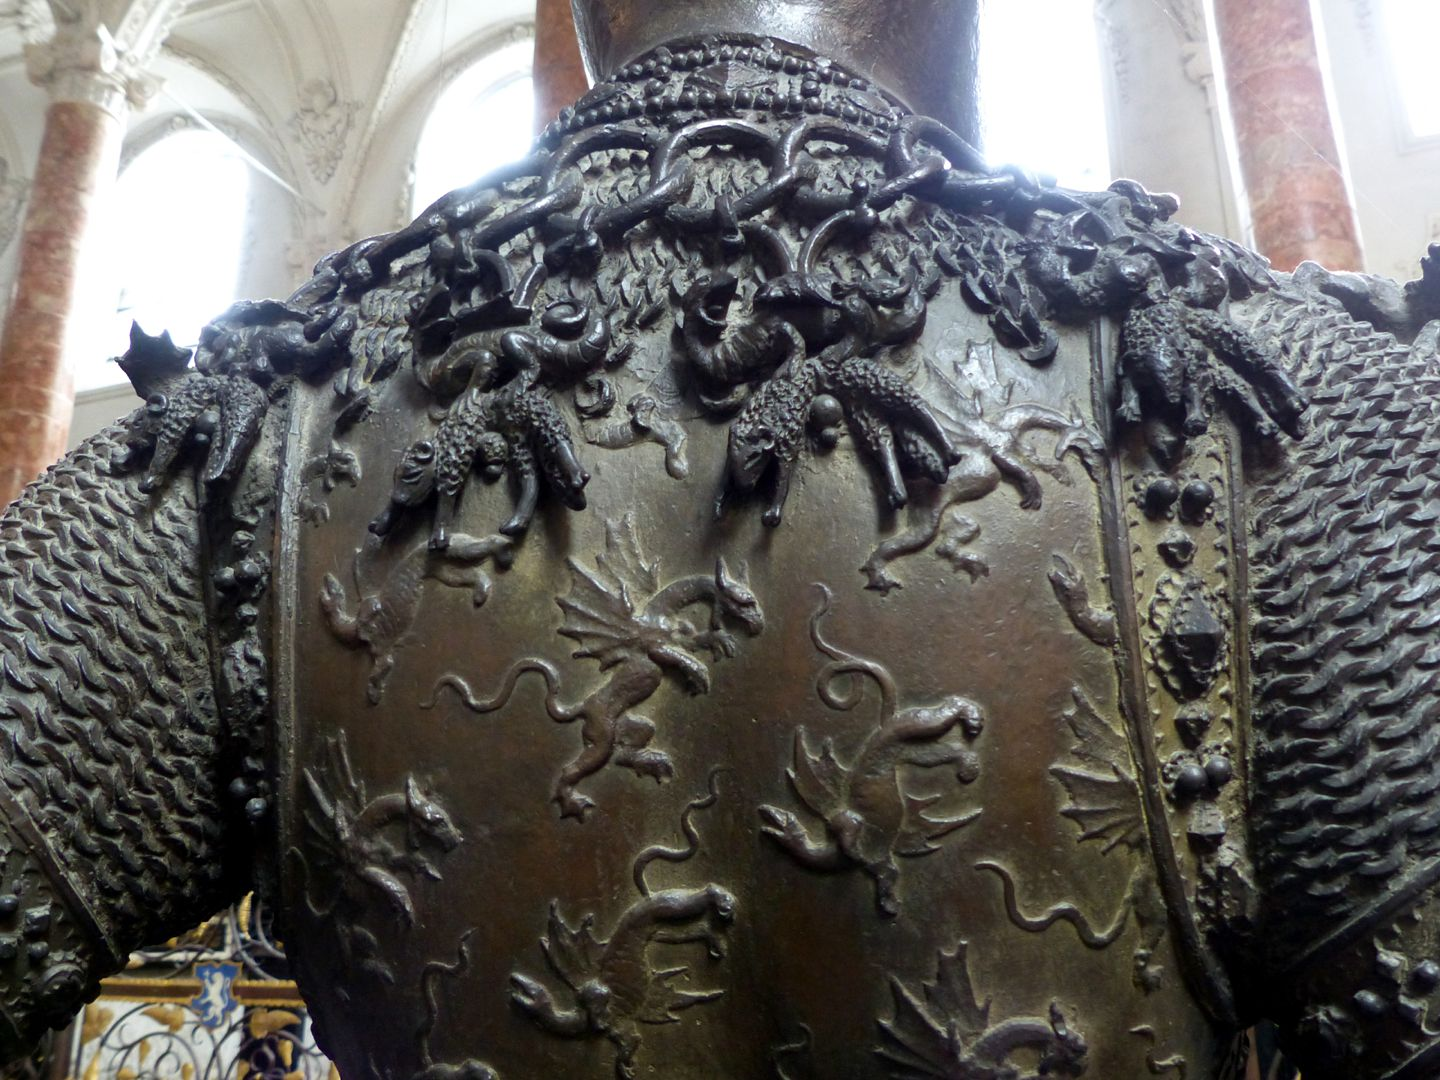 King Arthur (Innsbruck) Armor with dragons, chain with lambs, detail